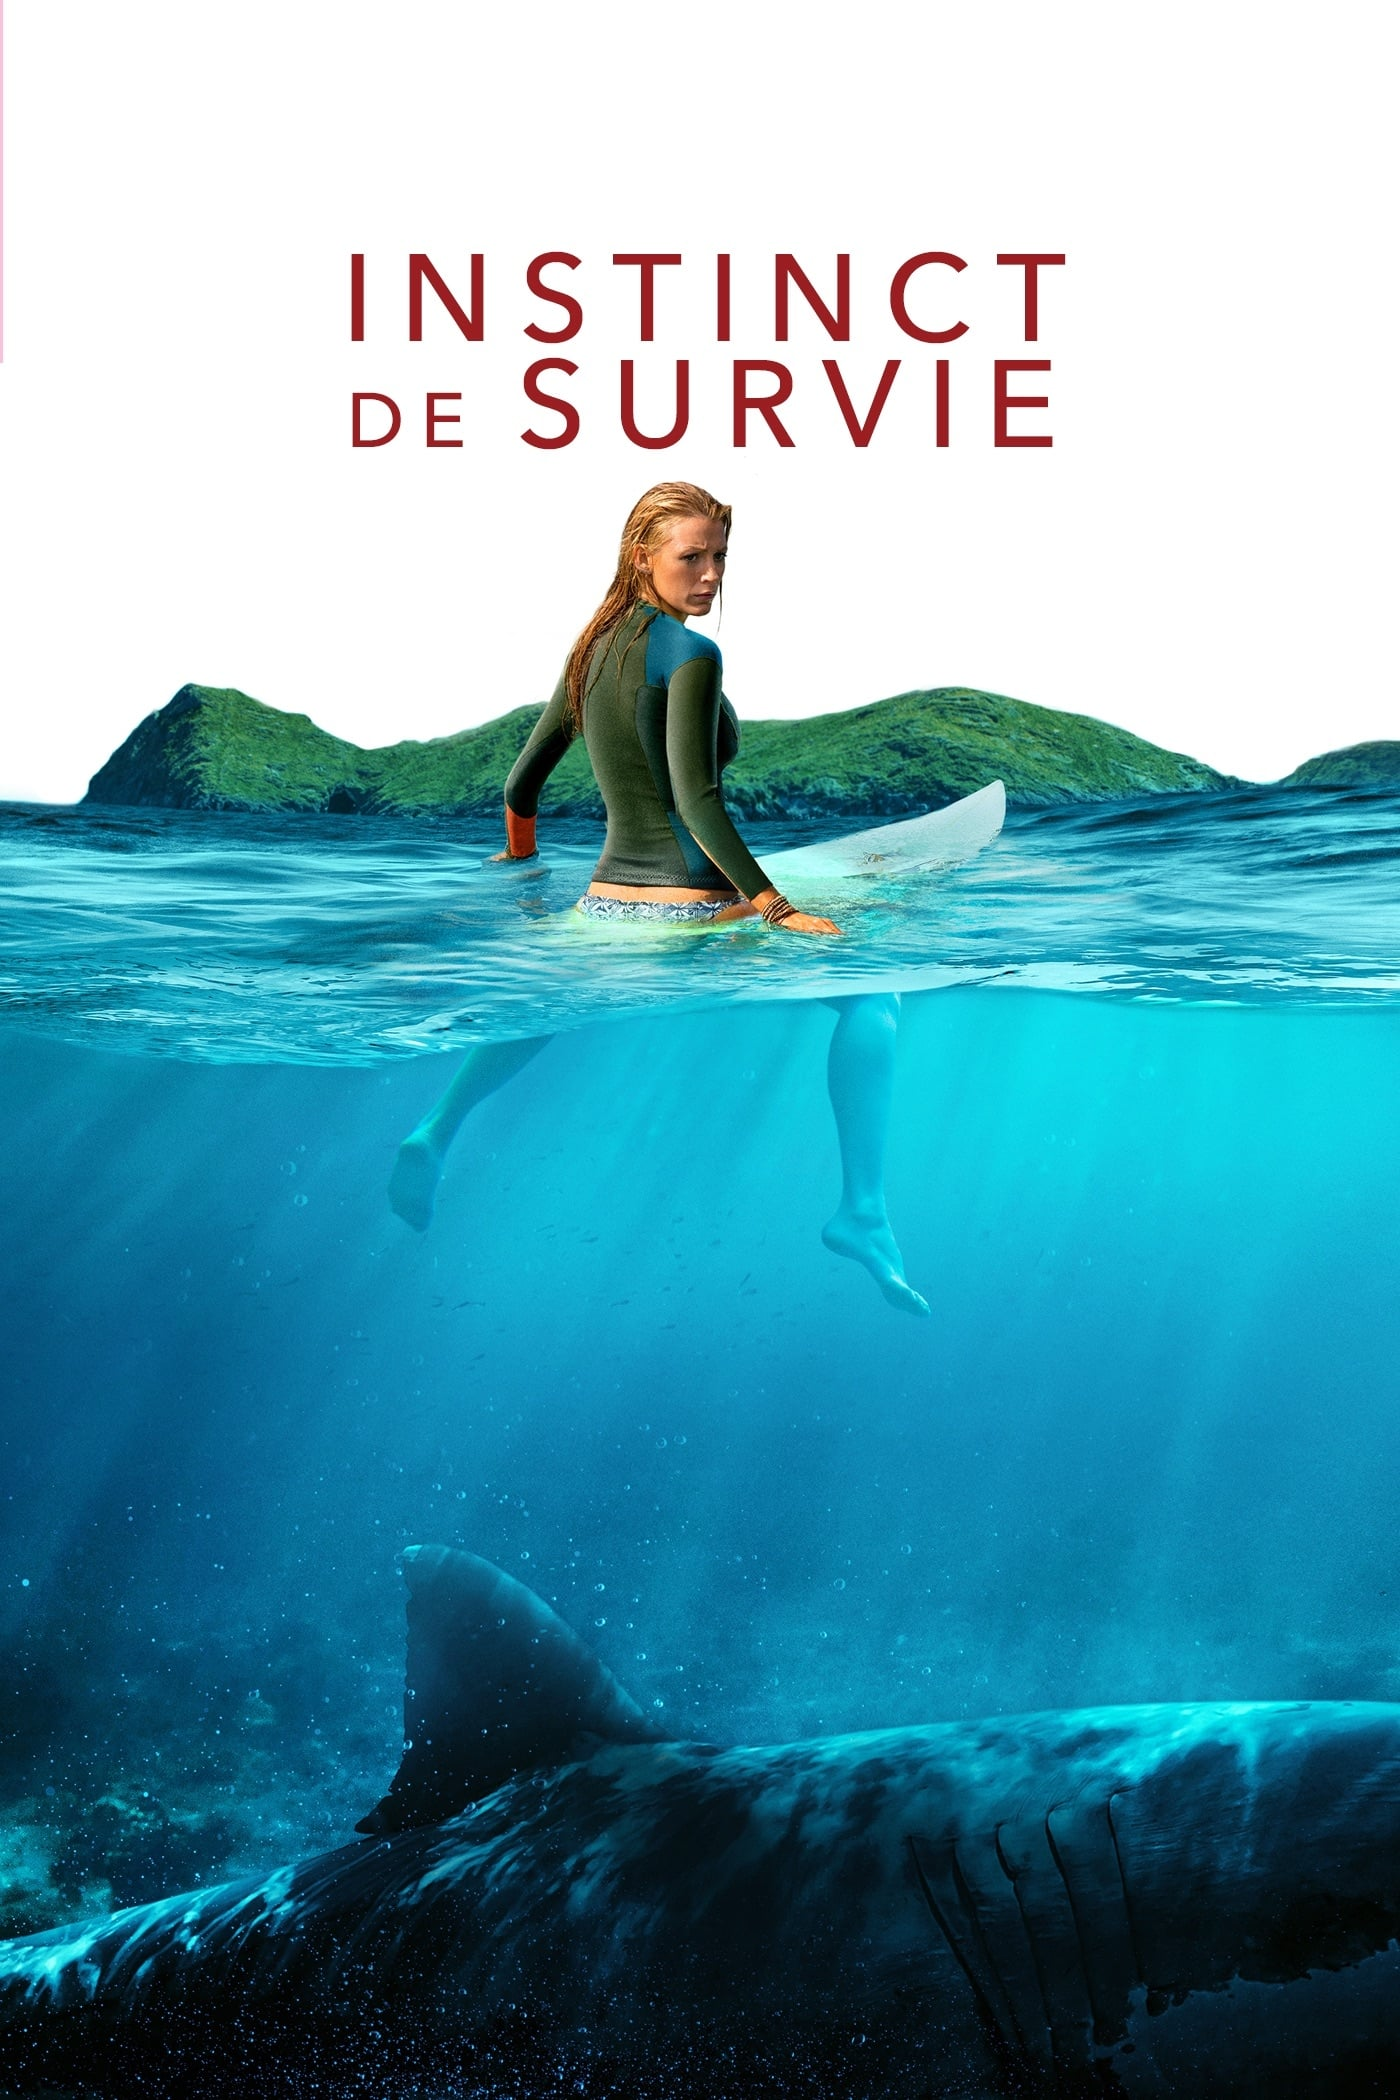 Instinct-De-Survie-Les-Bas-Fonds-The-Shallows-2016-576